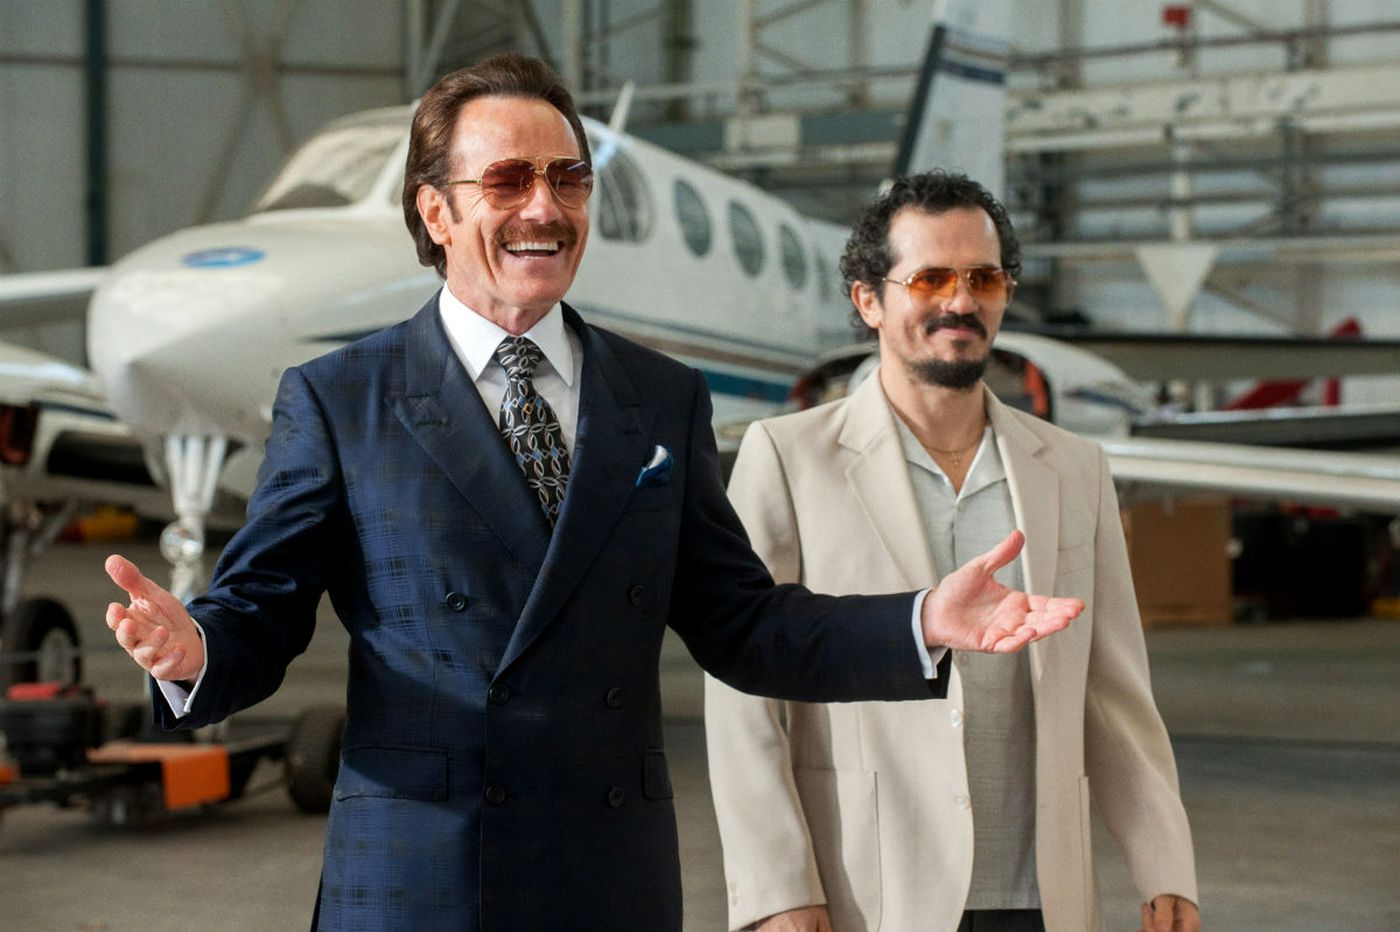 'The Infiltrator': Bryan Cranston goes undercover to expose drug kings and money-laundering sleaze